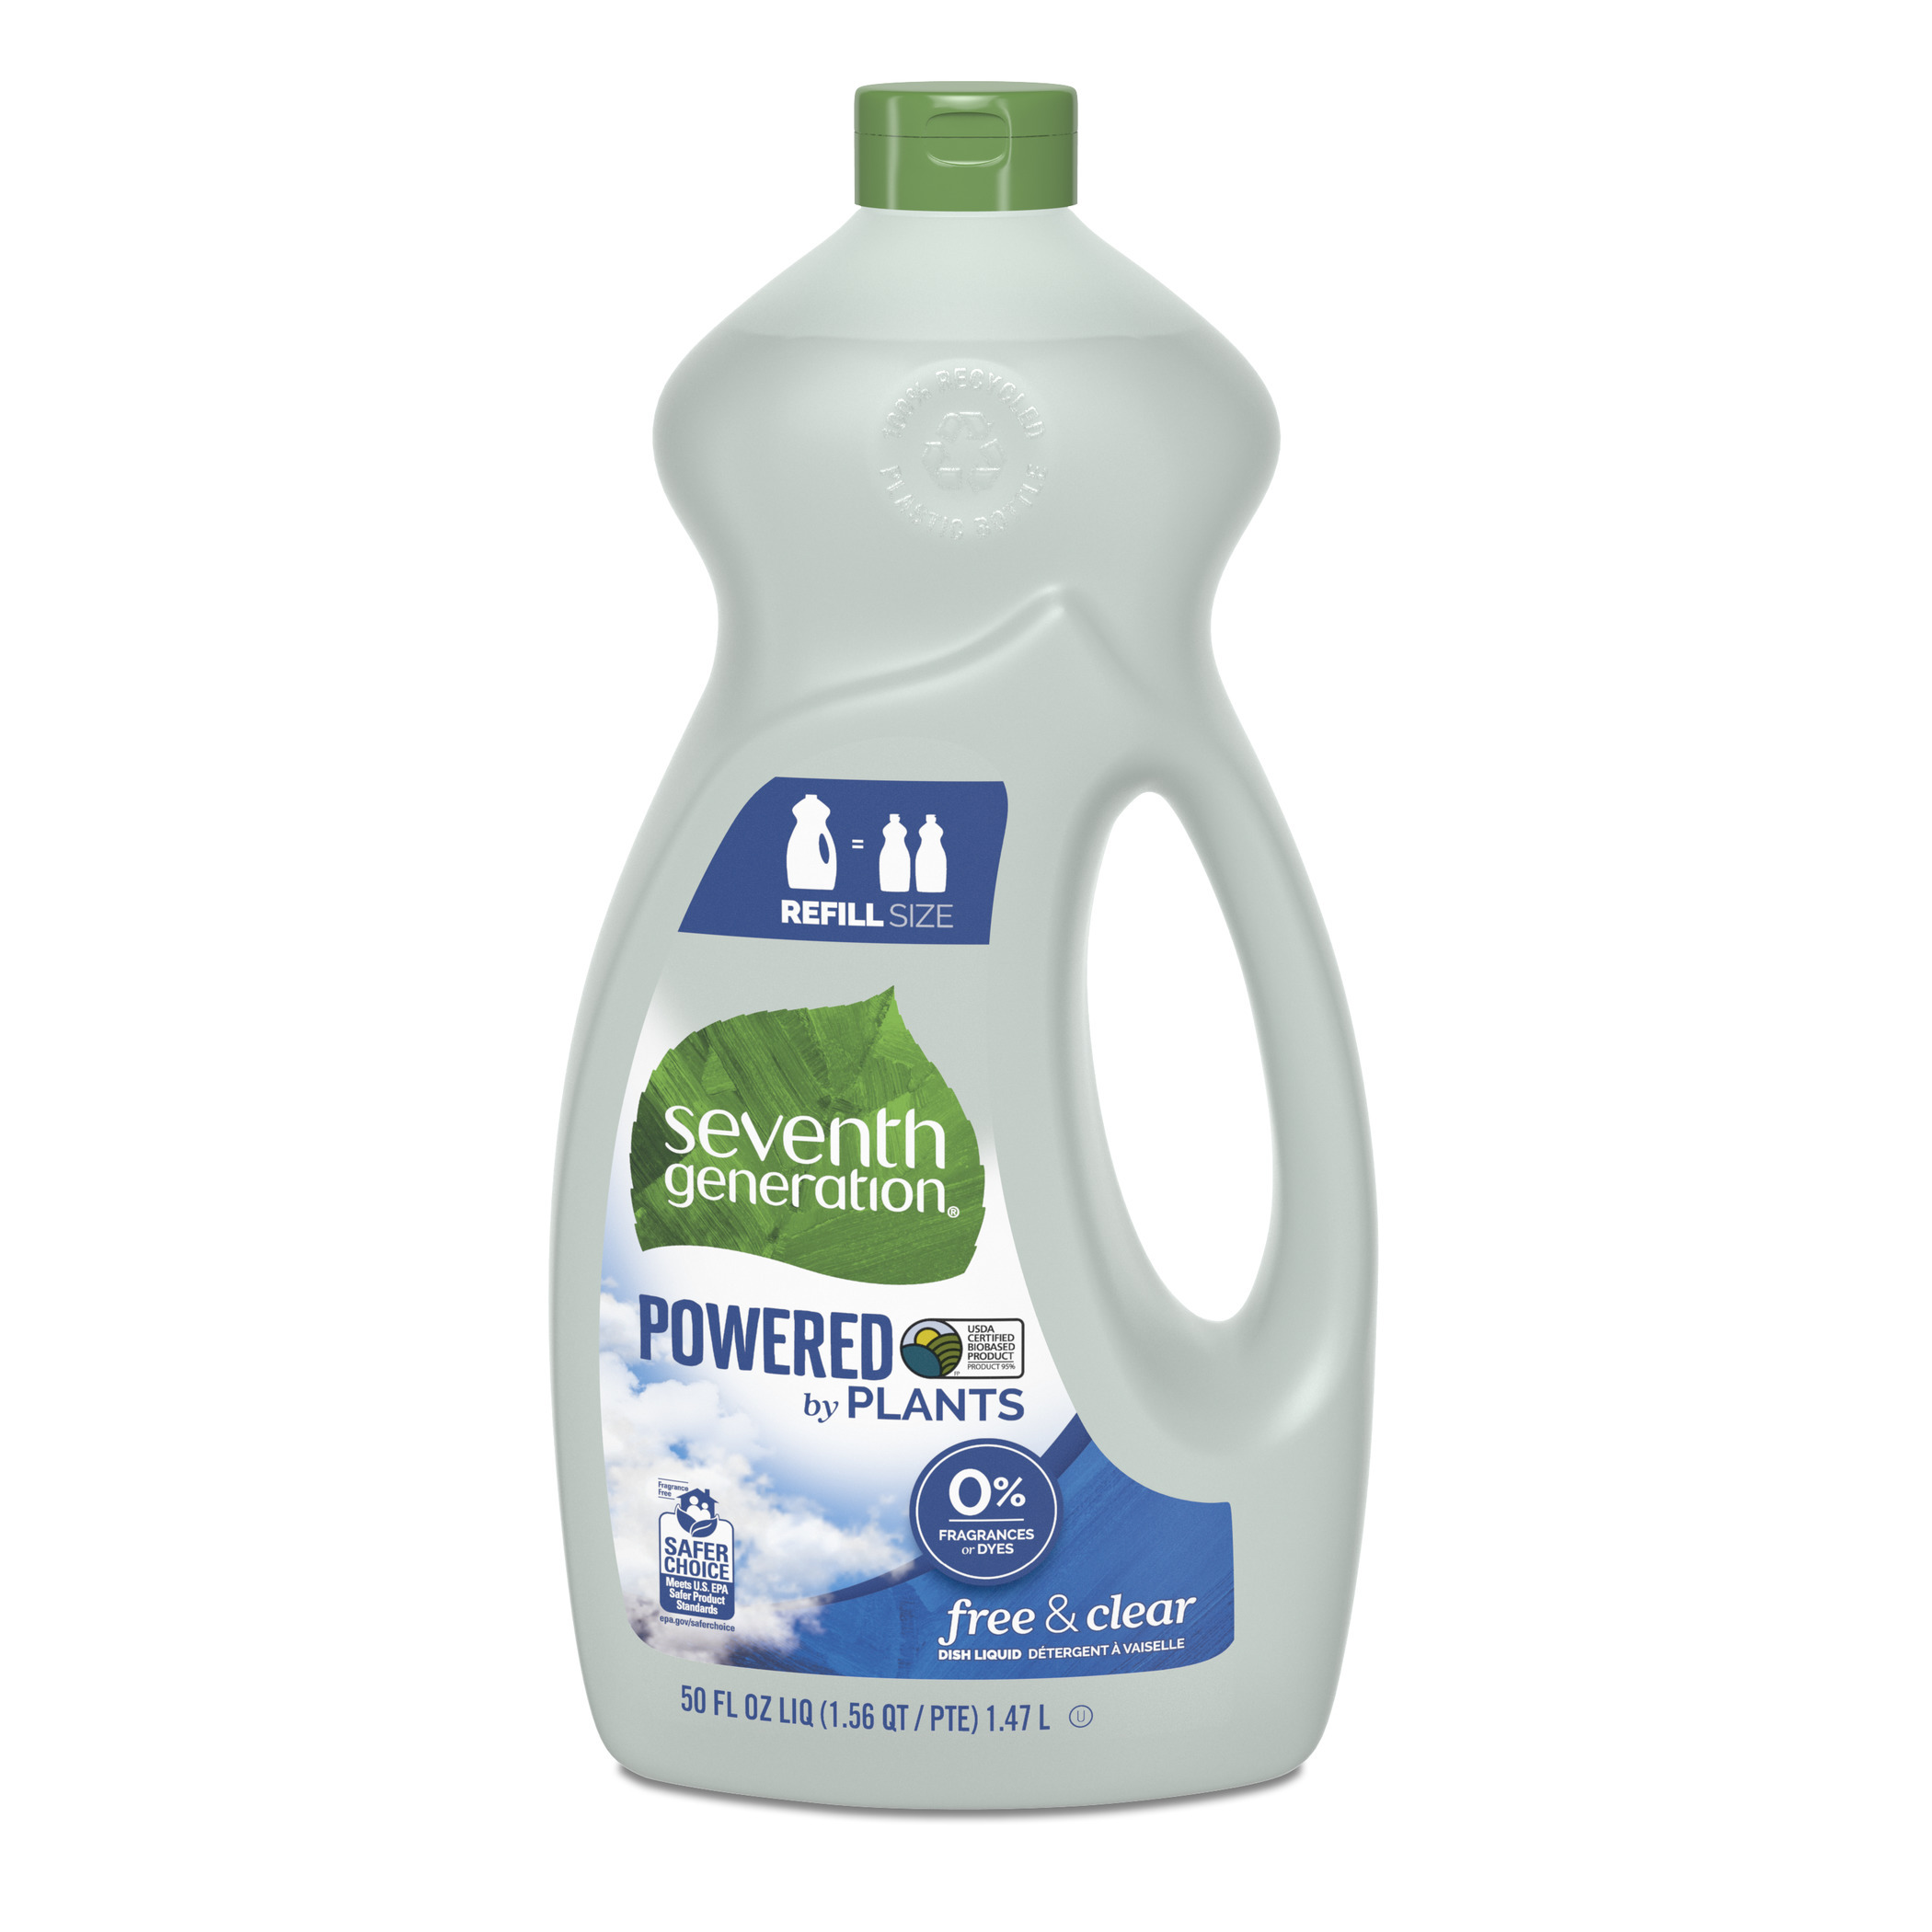 Seventh Generation Free & Clear Dish Liquid Soap Fragrance Free 50 oz